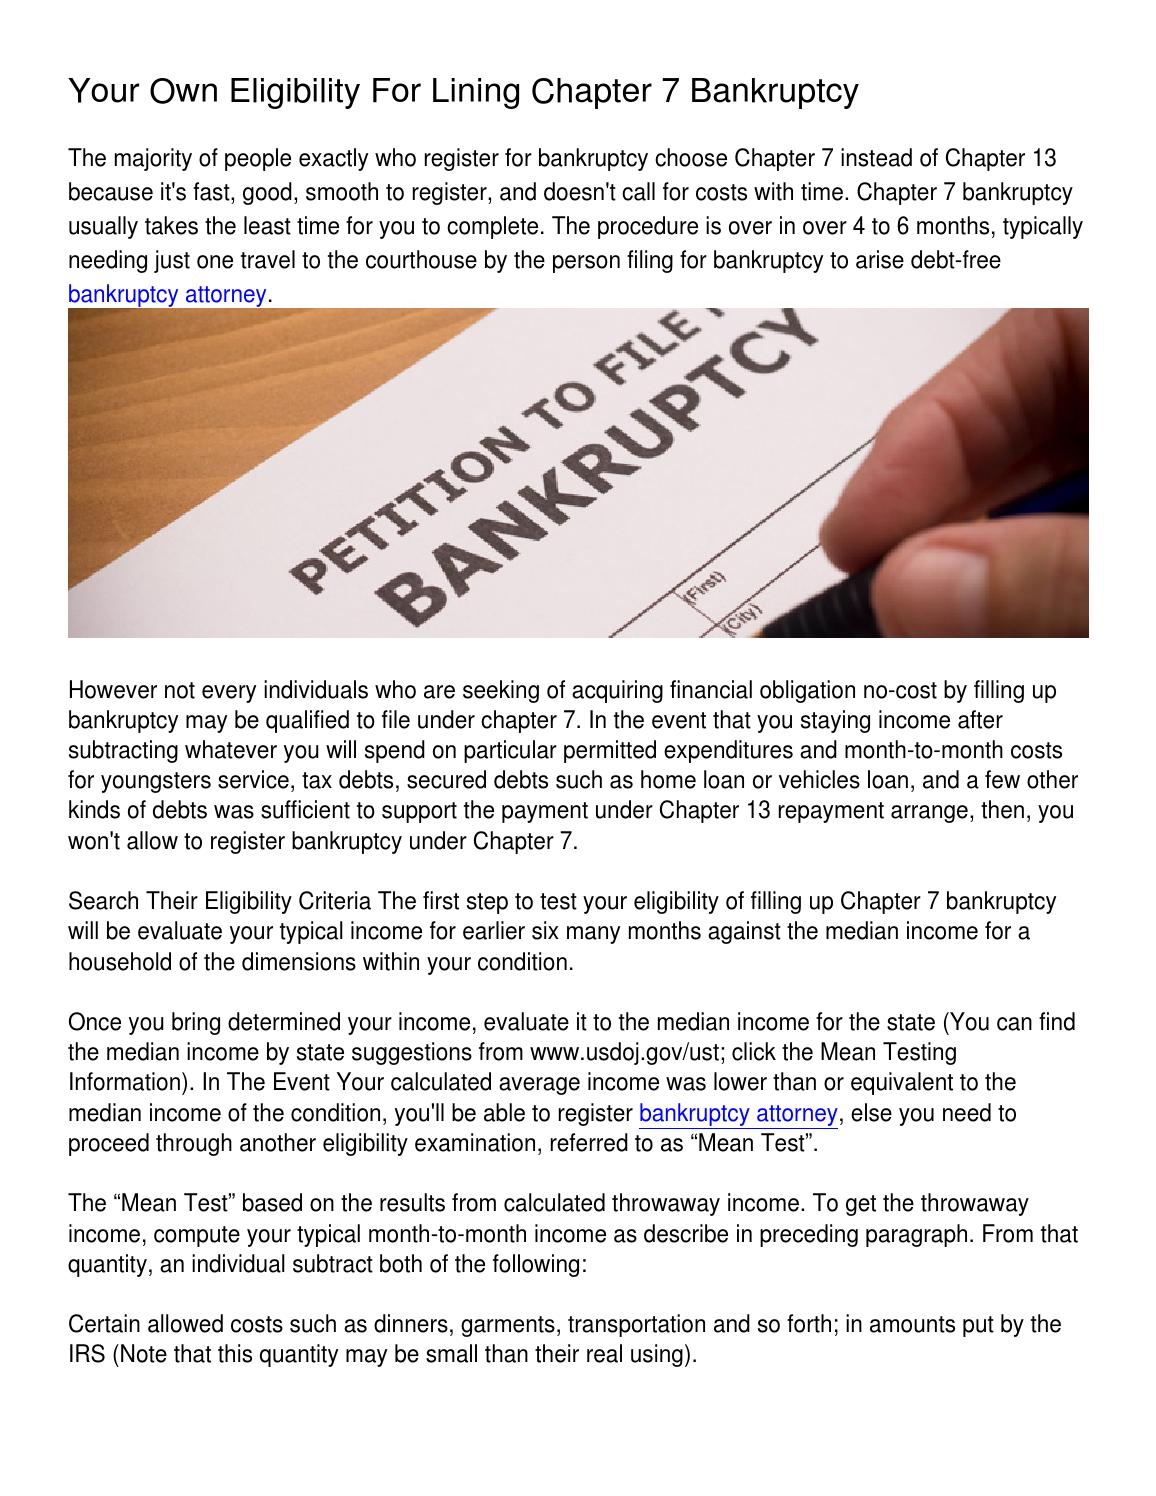 Your Own Eligibility For Lining Chapter 7 Bankruptcy By Mary Prewitt